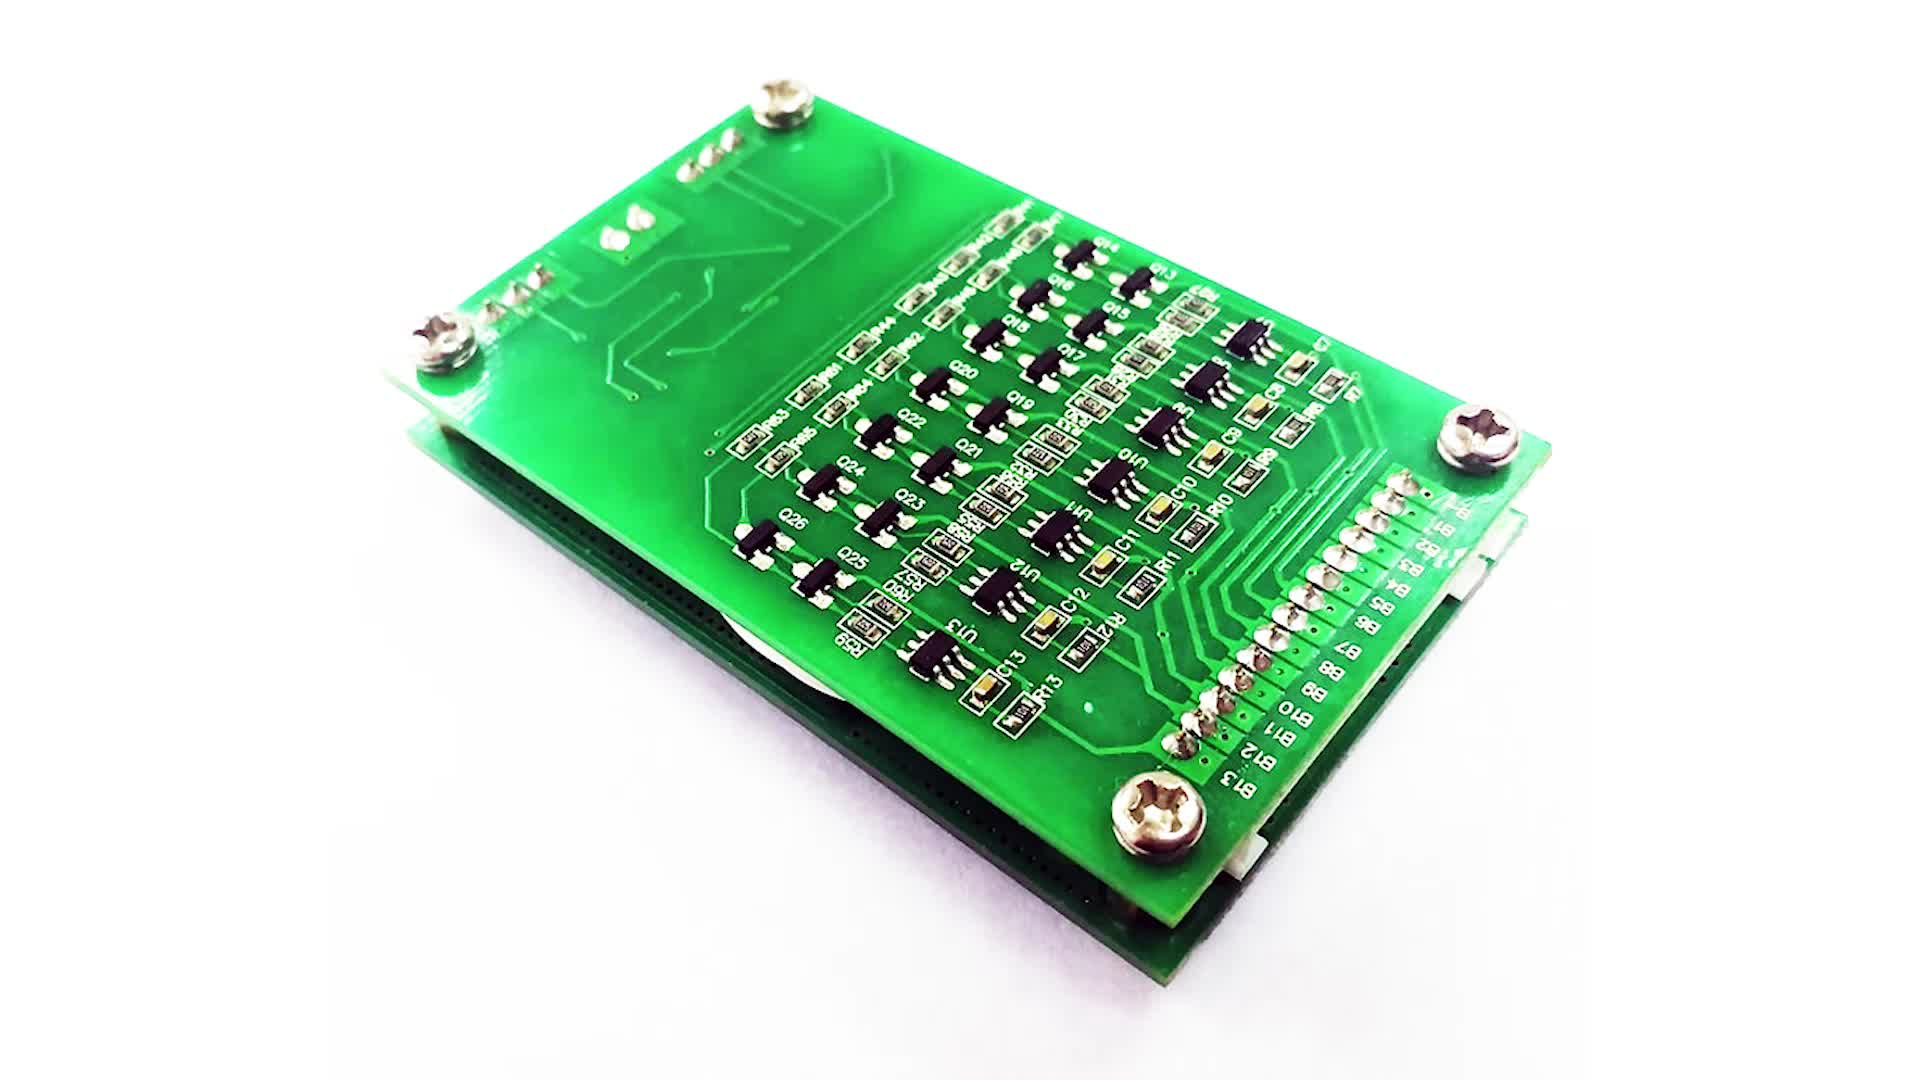 Smart 10S 20A 36V BMS /PCB/PCM Protection Circuit Control Board for Li-ion battery